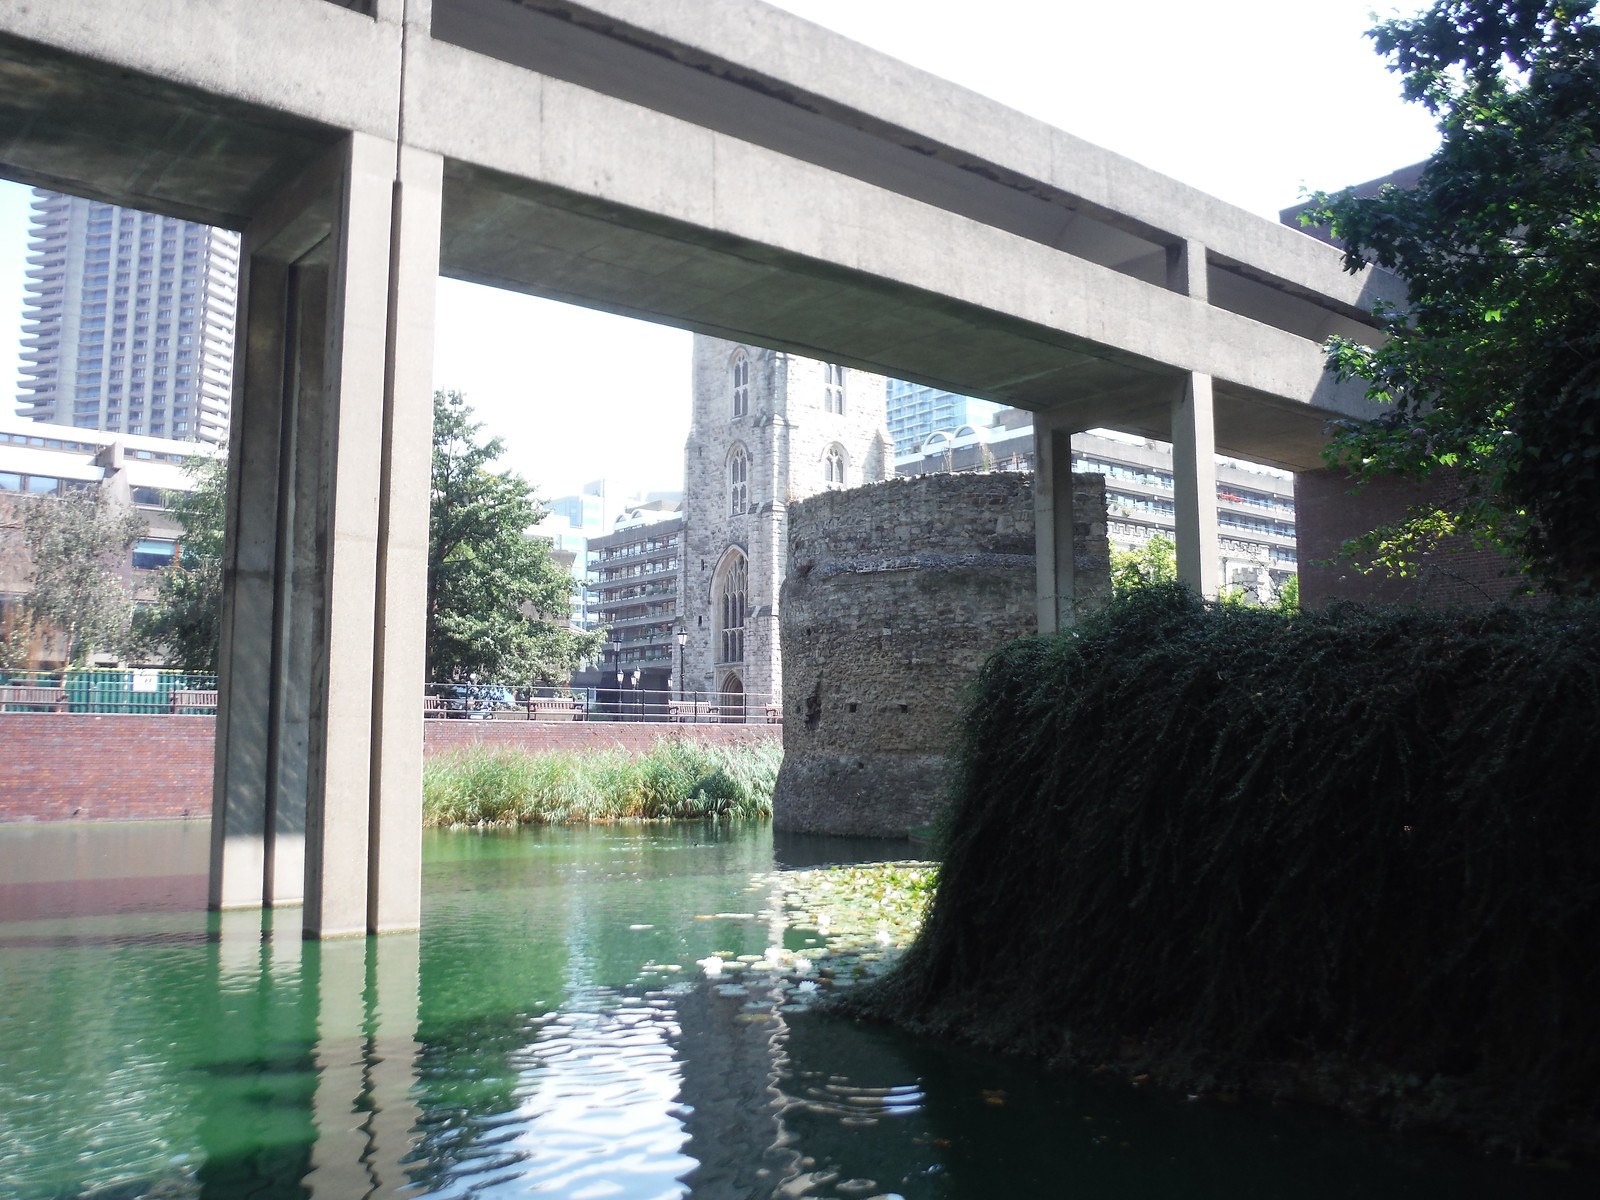 Bastion 12 of the London Wall across the Barbican's ornamental Lake SWC Short Walk 47 - The London Wall